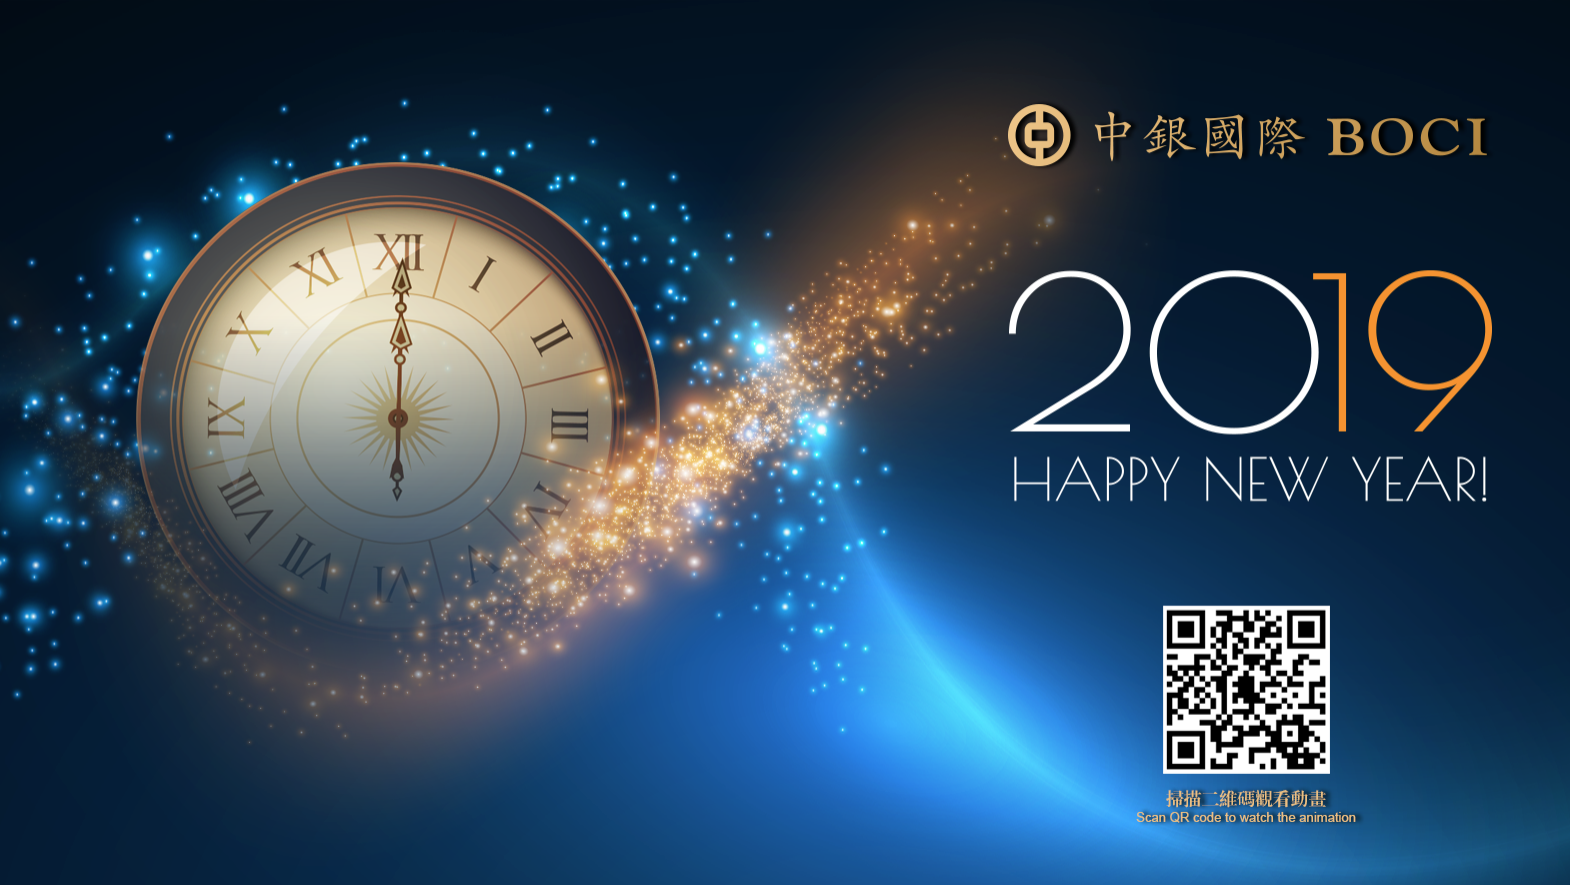 New Year e-card1.png